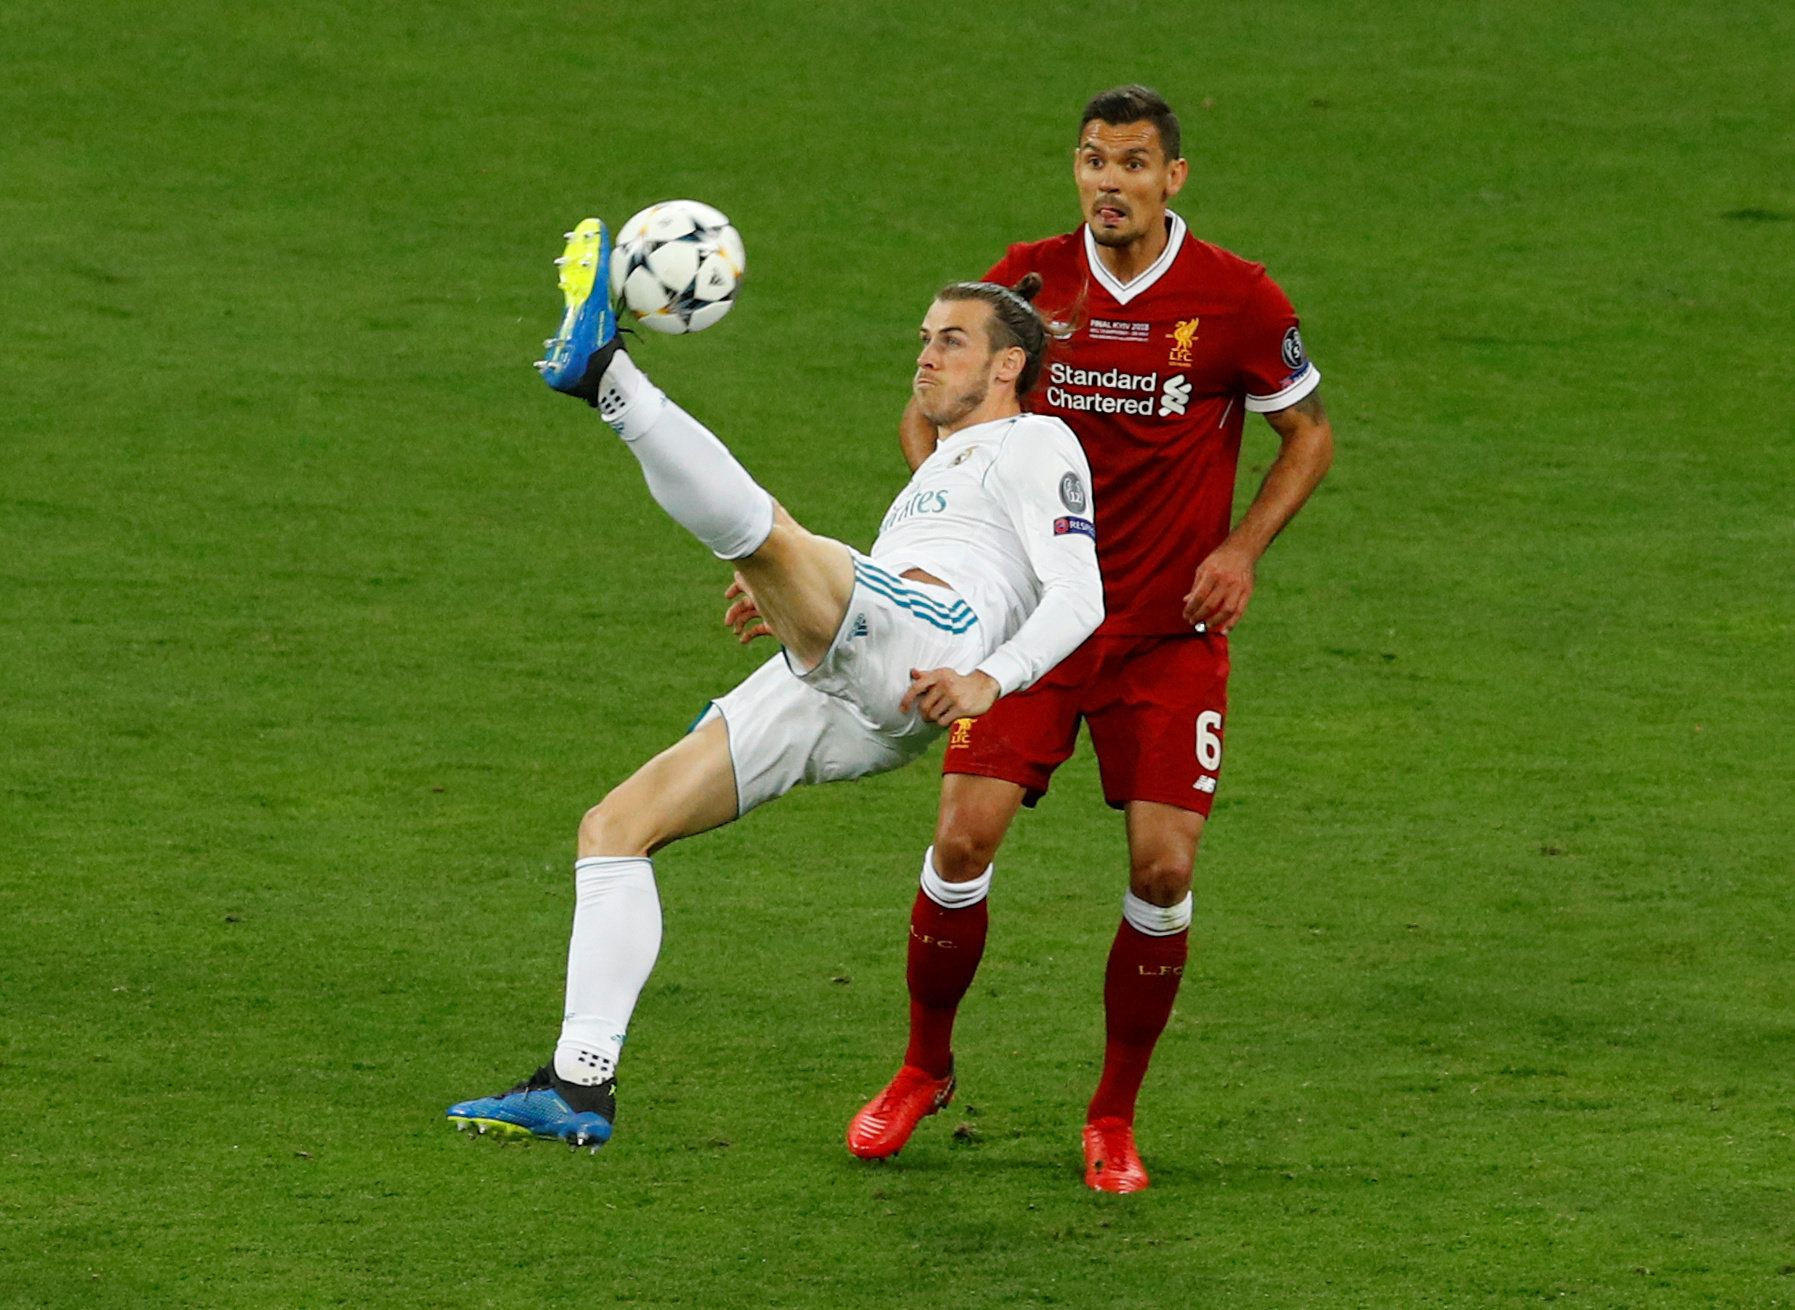 Soccer Football - Champions League Final - Real Madrid v Liverpool - NSC Olympic Stadium, Kiev, Ukraine - May 26, 2018   Real Madrid's Gareth Bale scores their second goal    REUTERS/Phil Noble